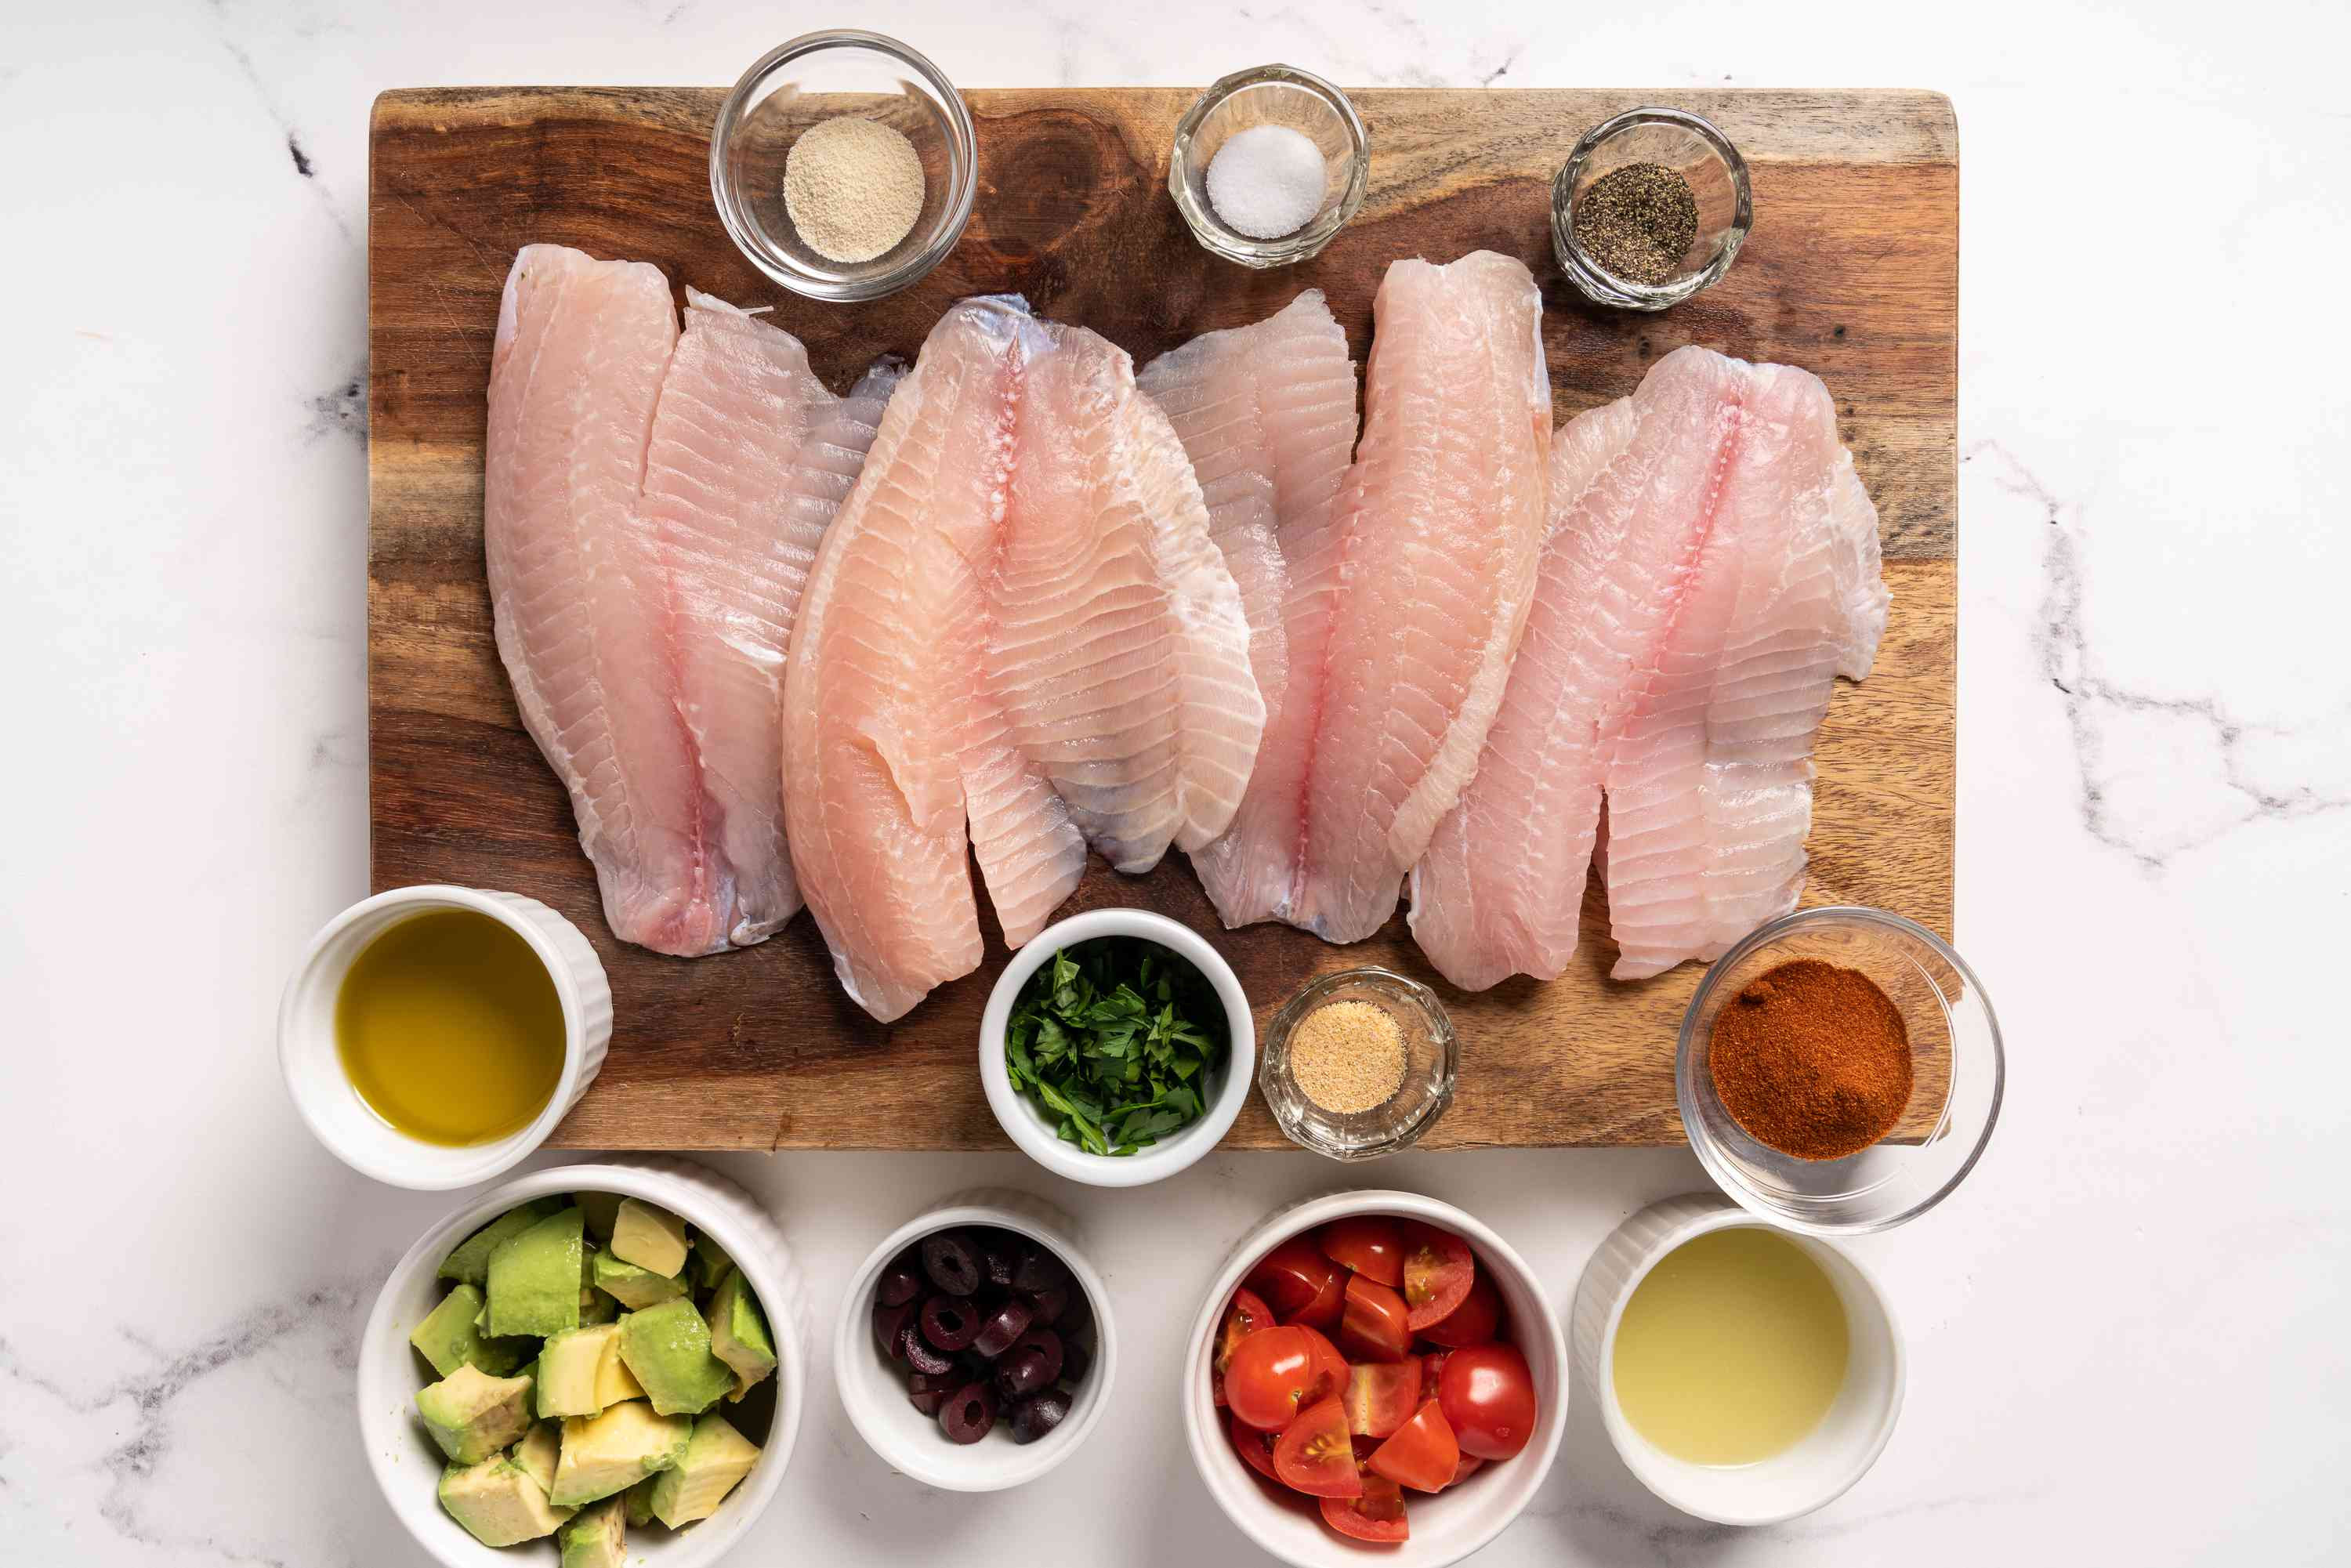 Simple and Tasty Tilapia With Avocado ingredients